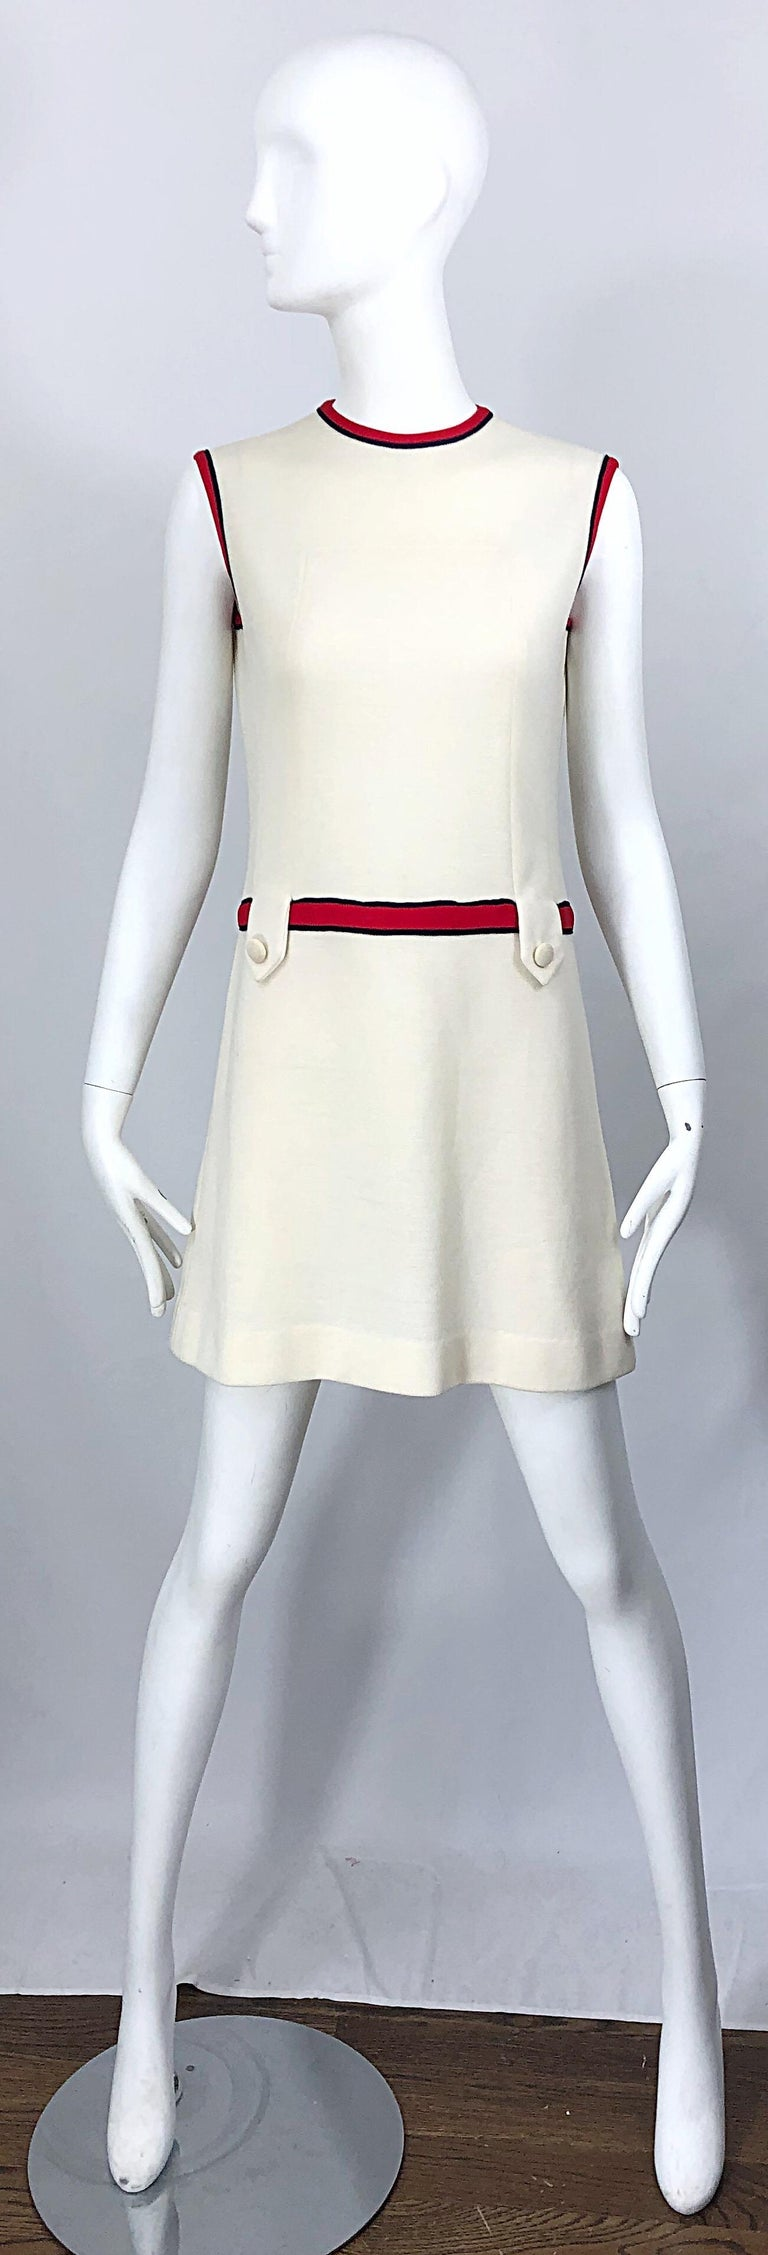 Chic 1960s ivory, navy blue and red knit scooter / shift dress! Features soft ivory knit that has plenty of stretch. Two loops and buttons at each side of the front waist. Hidden metal zipper up the back with hook-and-eye closure. Great with